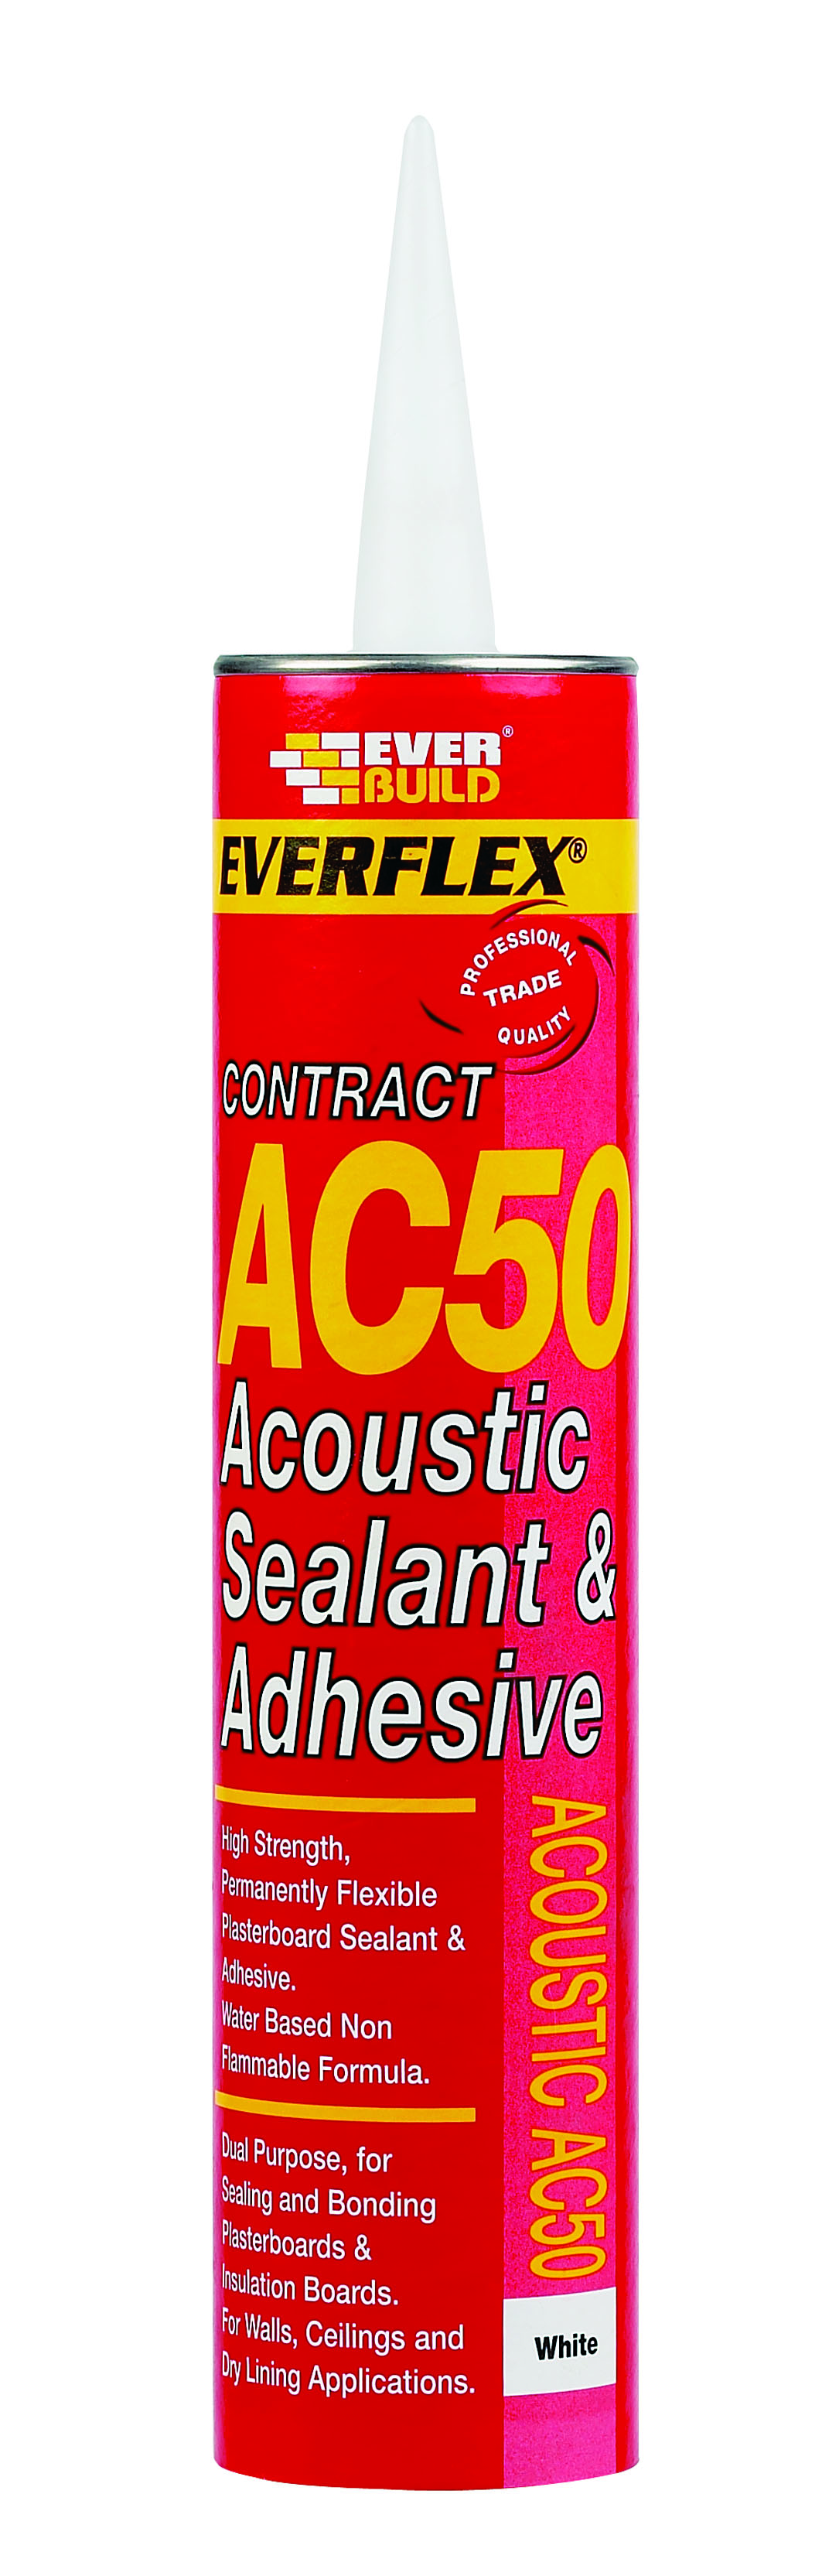 900ml Jumbo Cartridge White Acoustic Sealant & Adhesive